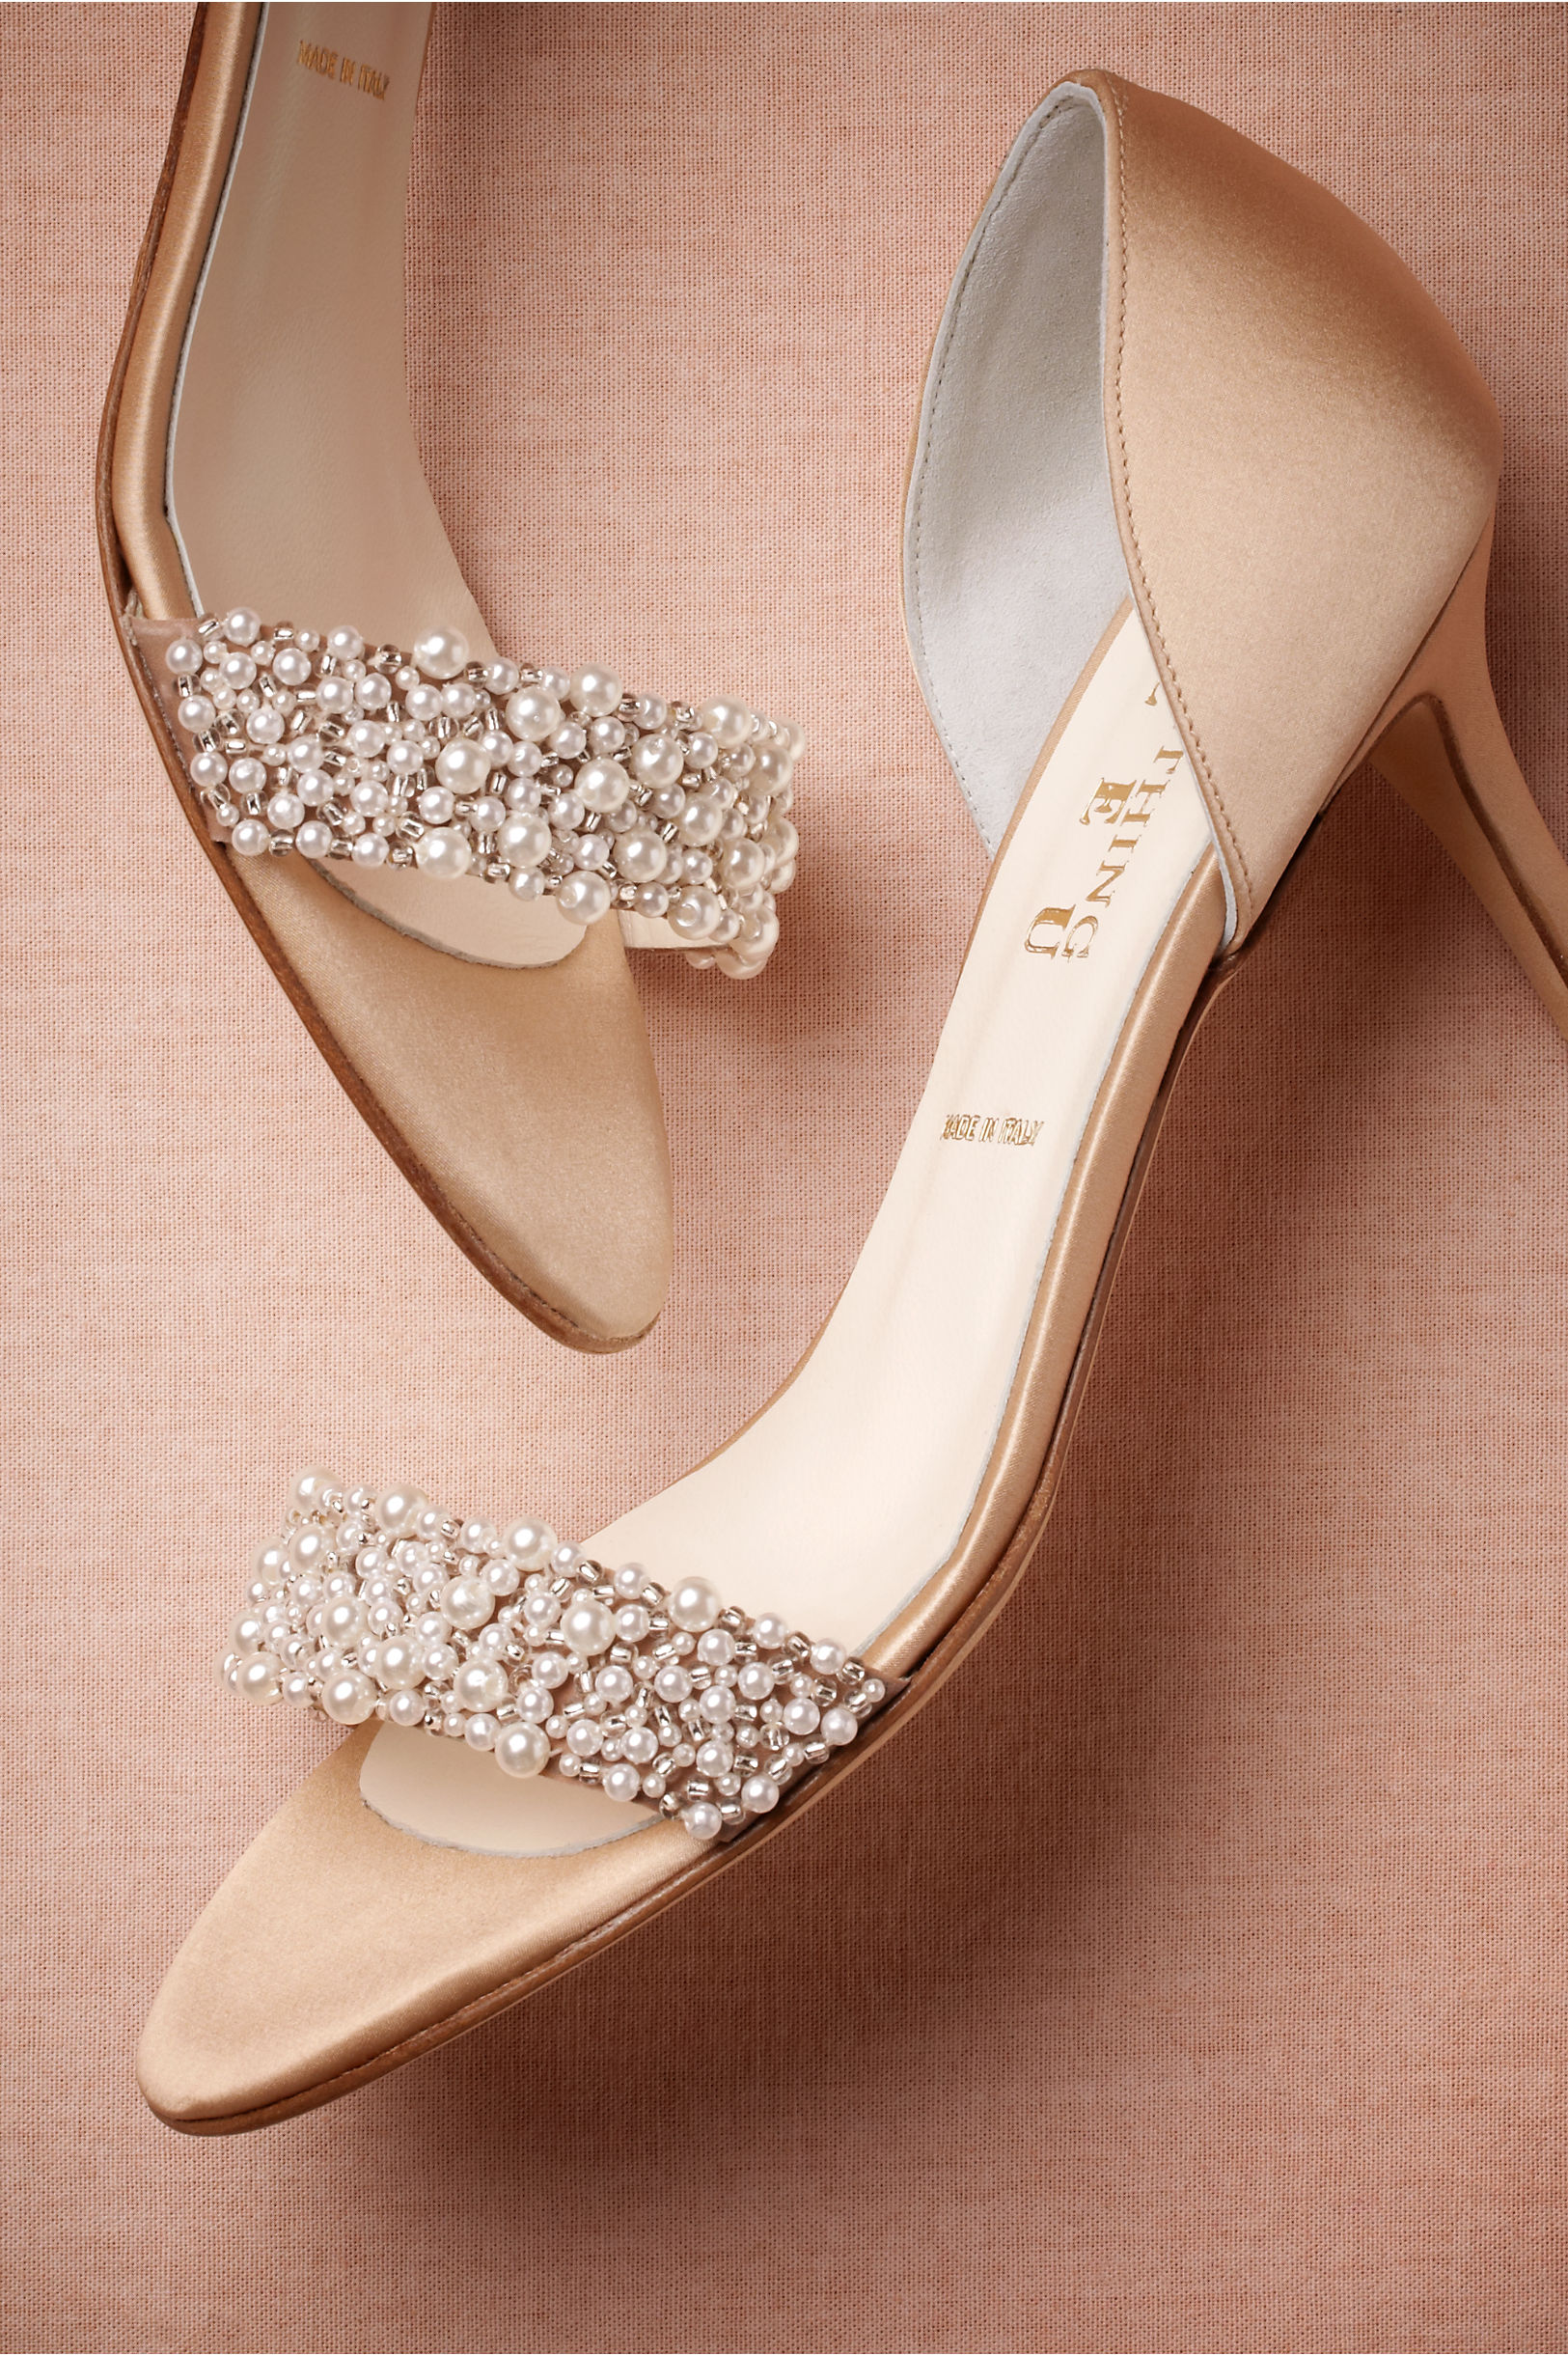 oyster bed dorsays blush wedding shoes Beige Oyster Bed Dorsays BHLDN